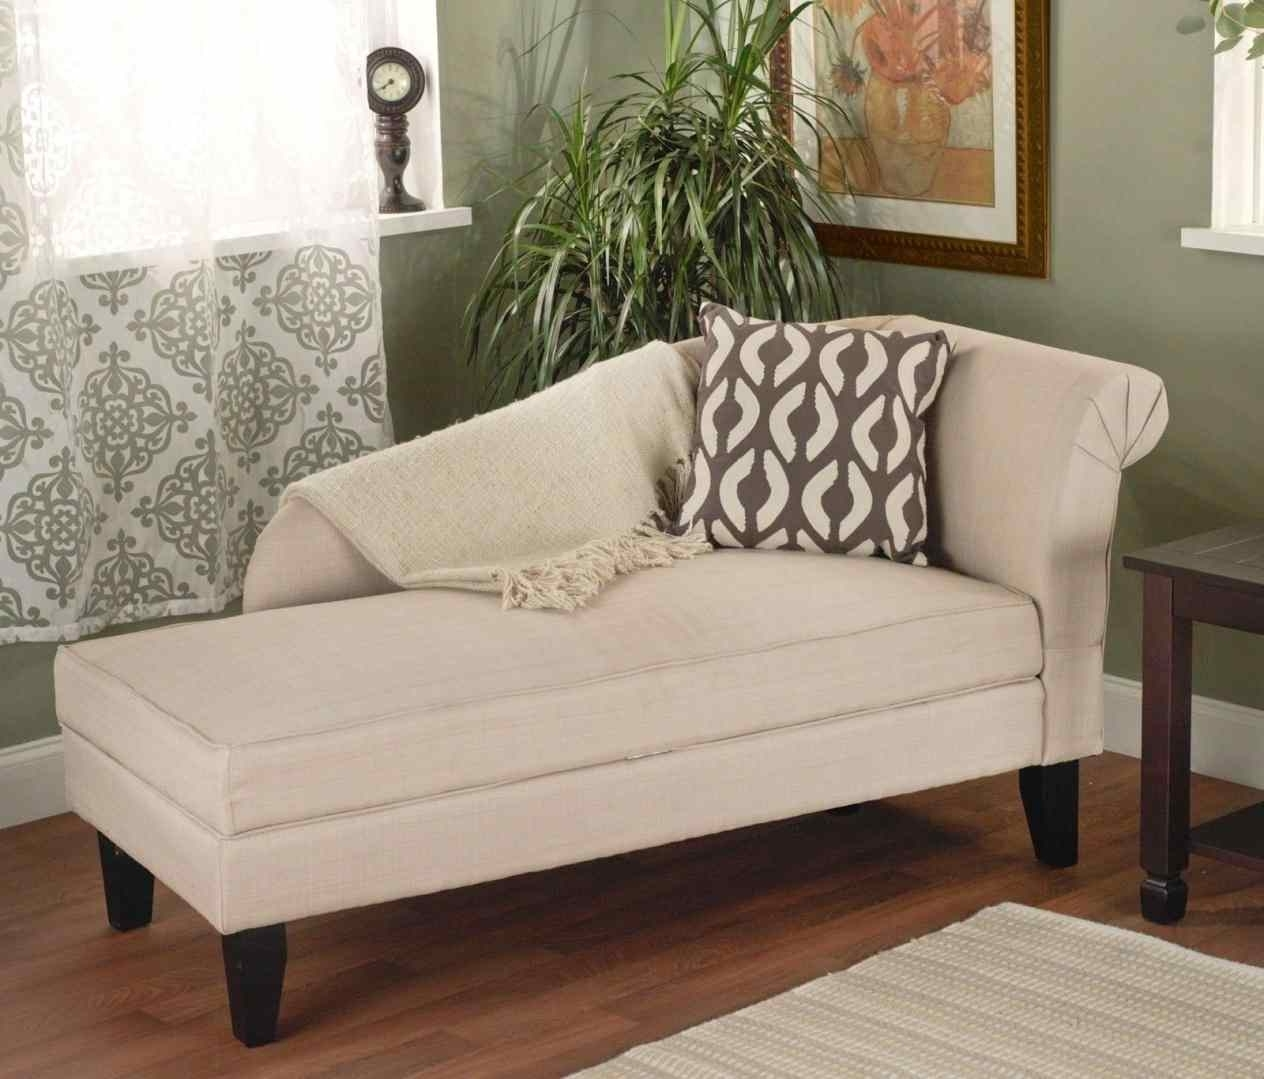 2017 Sofa : Mini Couch For Modern Bedroom Sofa Chair Wonderful Cheap S Throughout Small Chaise Lounge Chairs For Bedroom (View 15 of 15)